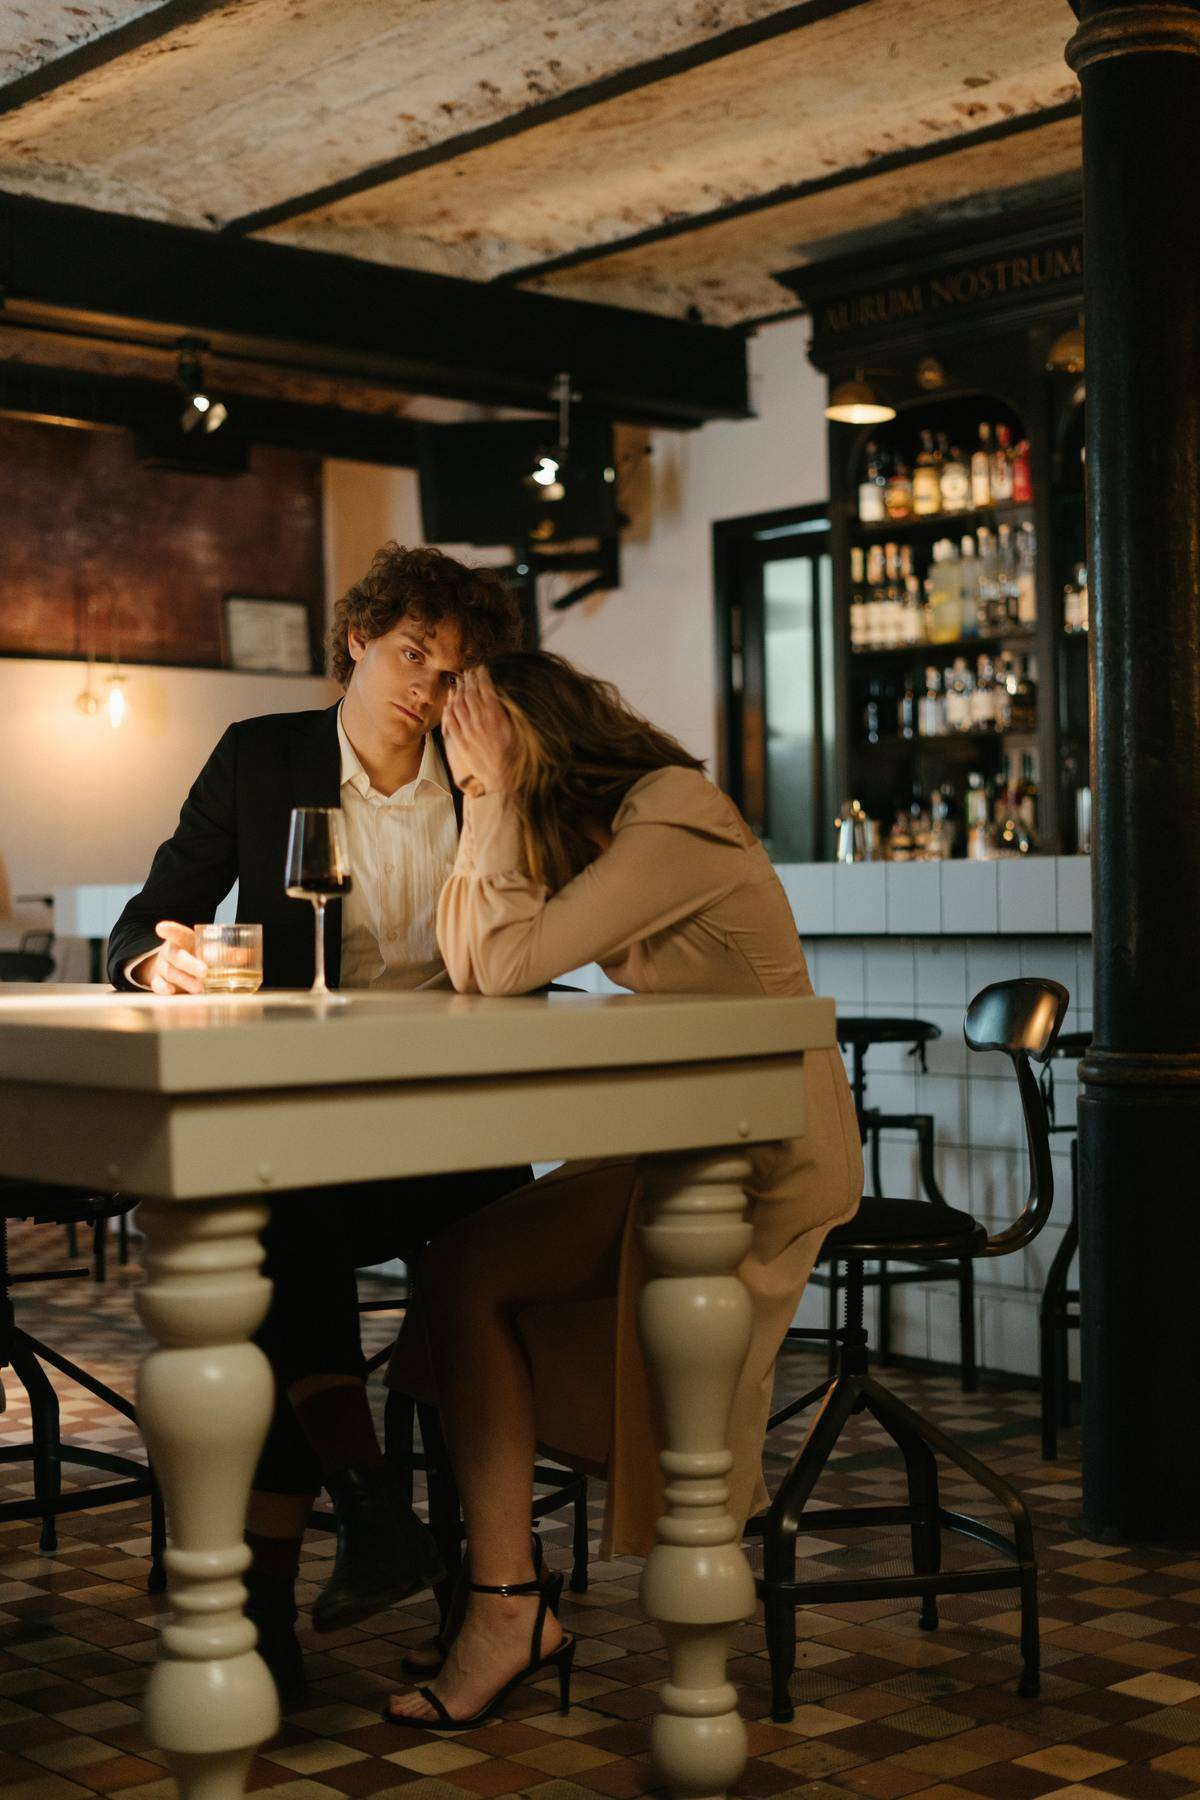 man looking at woman with head in hands at restaurant